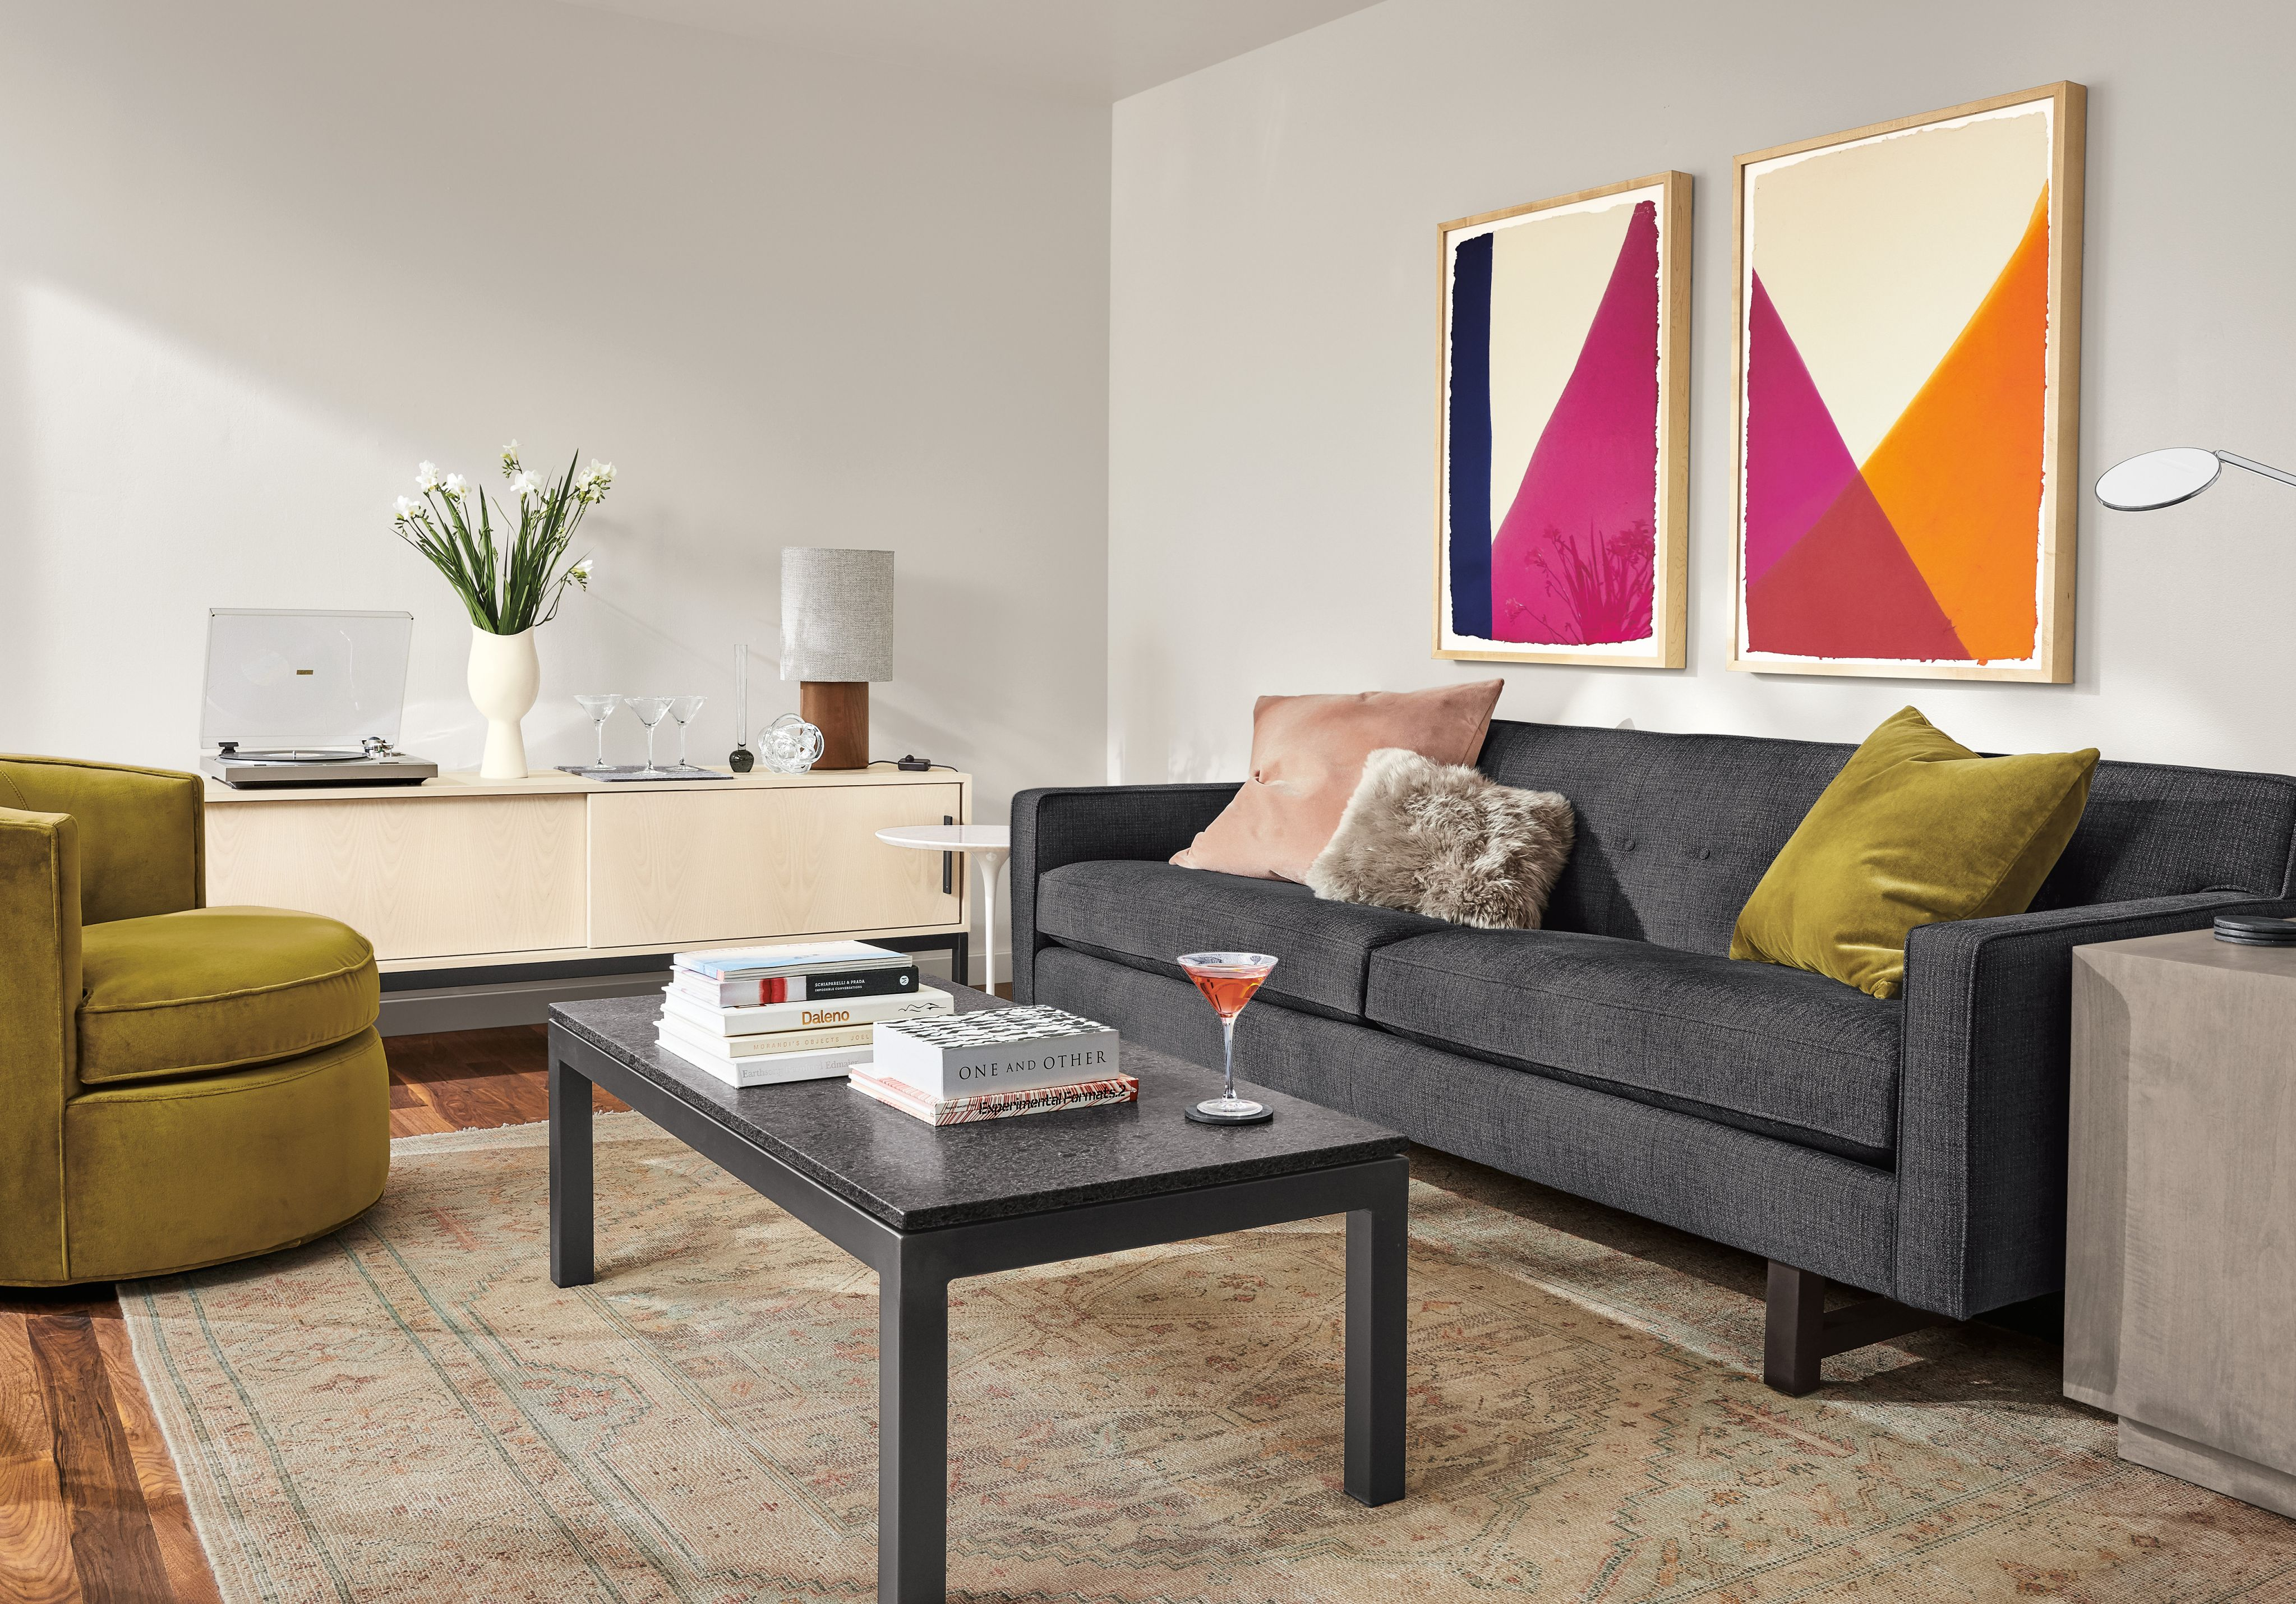 Decorating Ideas For A Small Living Room - Room & Board throughout Small Living Room Furniture